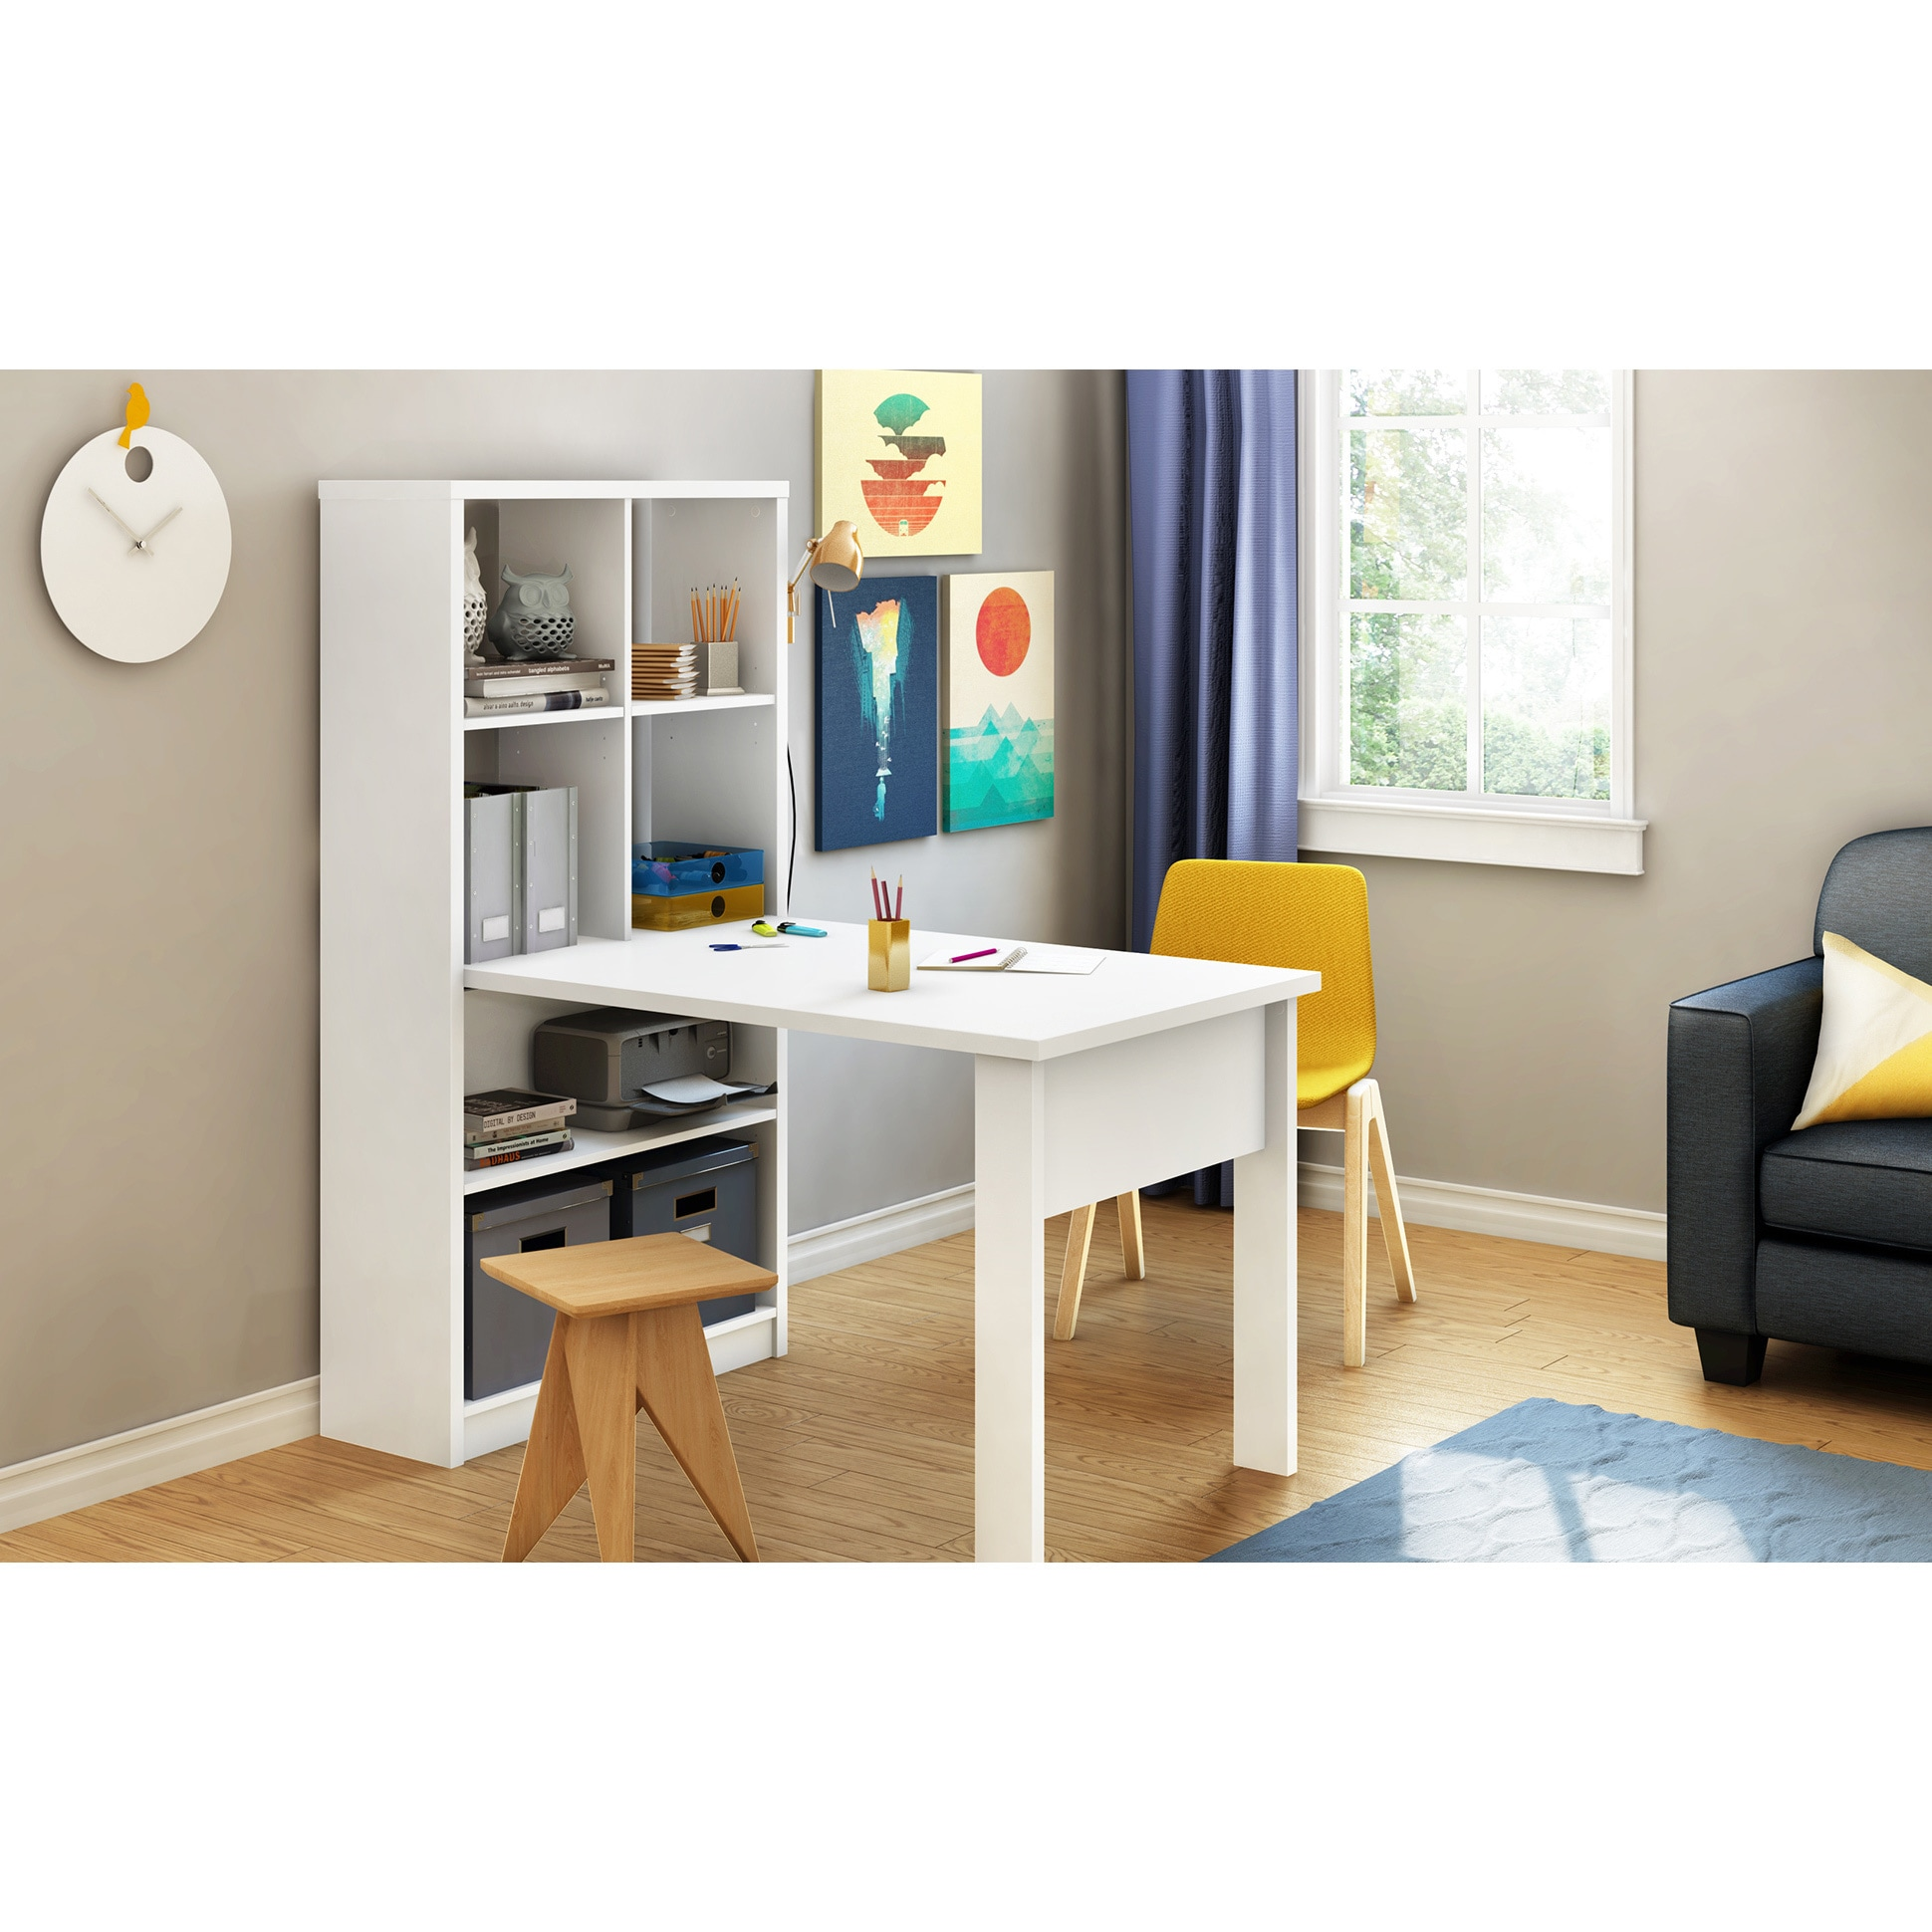 South S Annexe Sewing Machine Craft Table And Storage Unit Combo Free Shipping Today 11098793